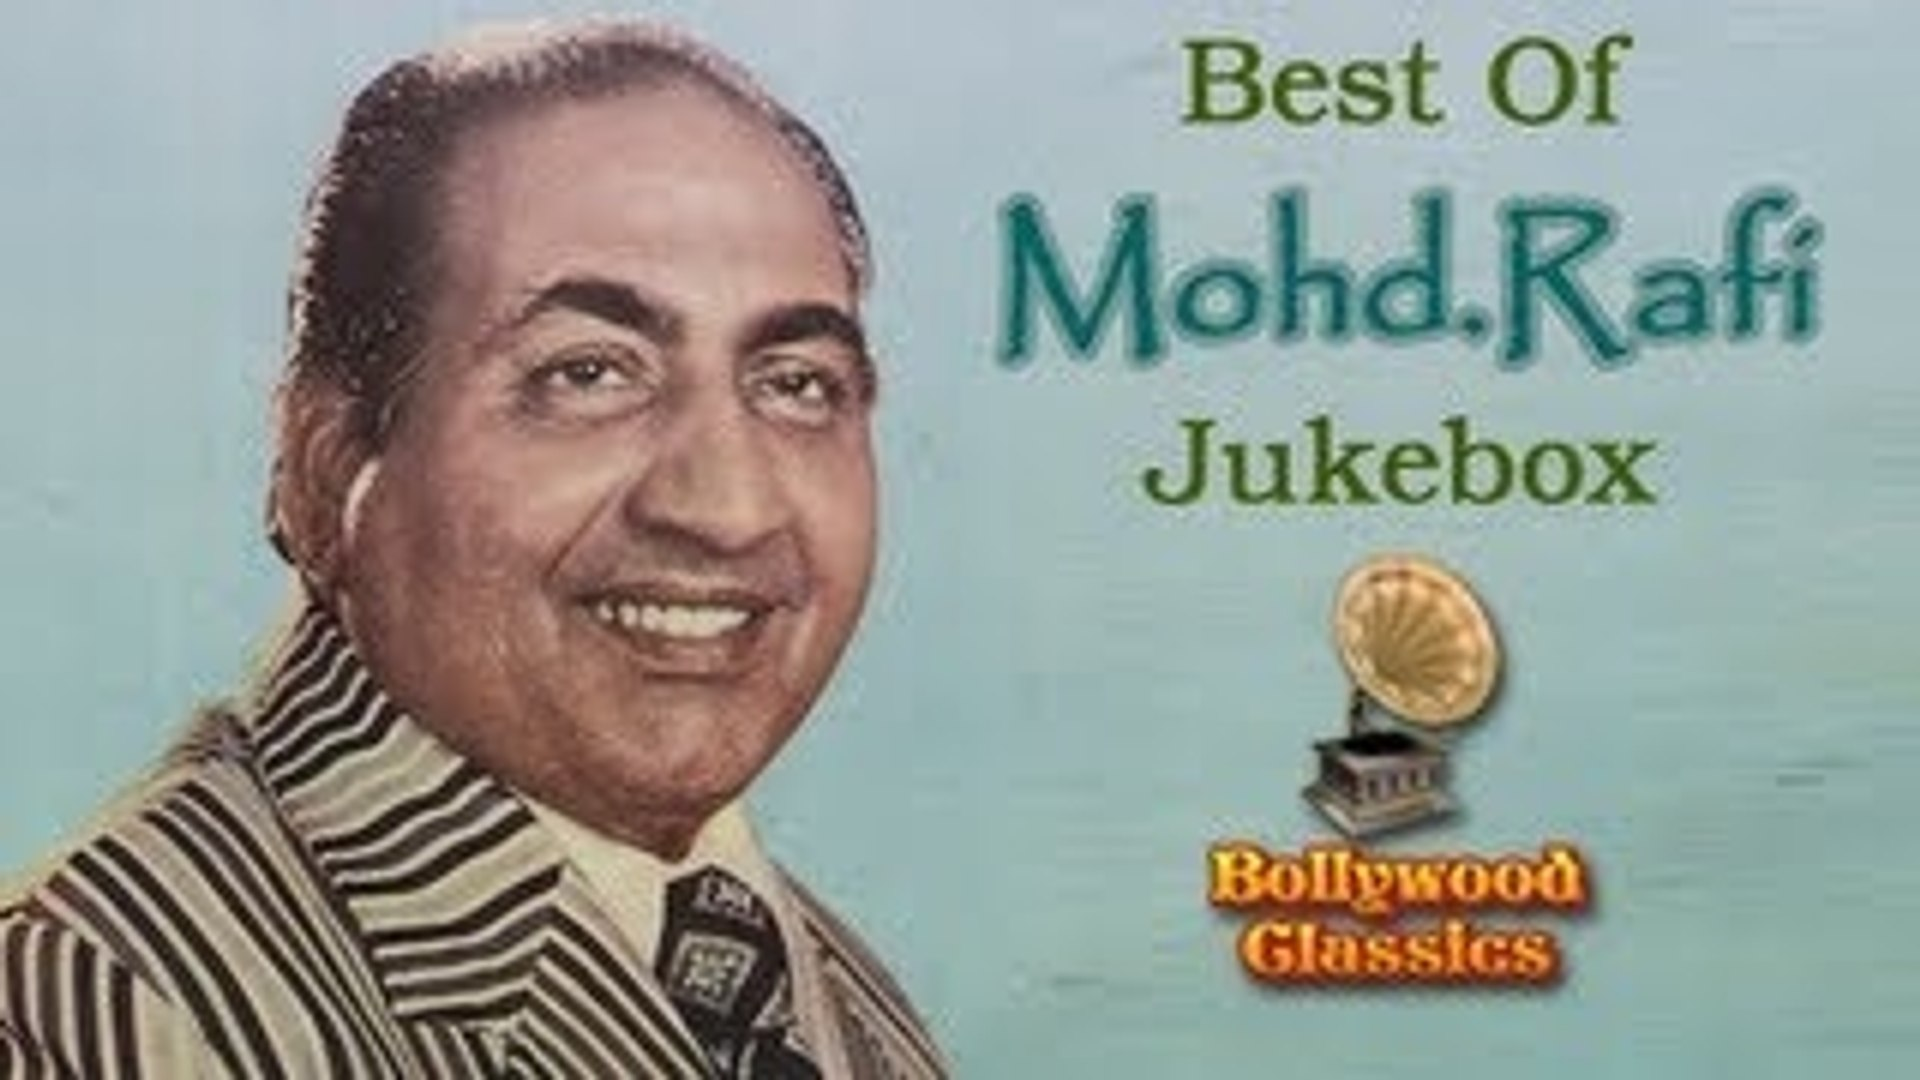 Best of Mohammed Rafi Jukebox - Greatest Hits - Evergreen Superhit Classic  Songs